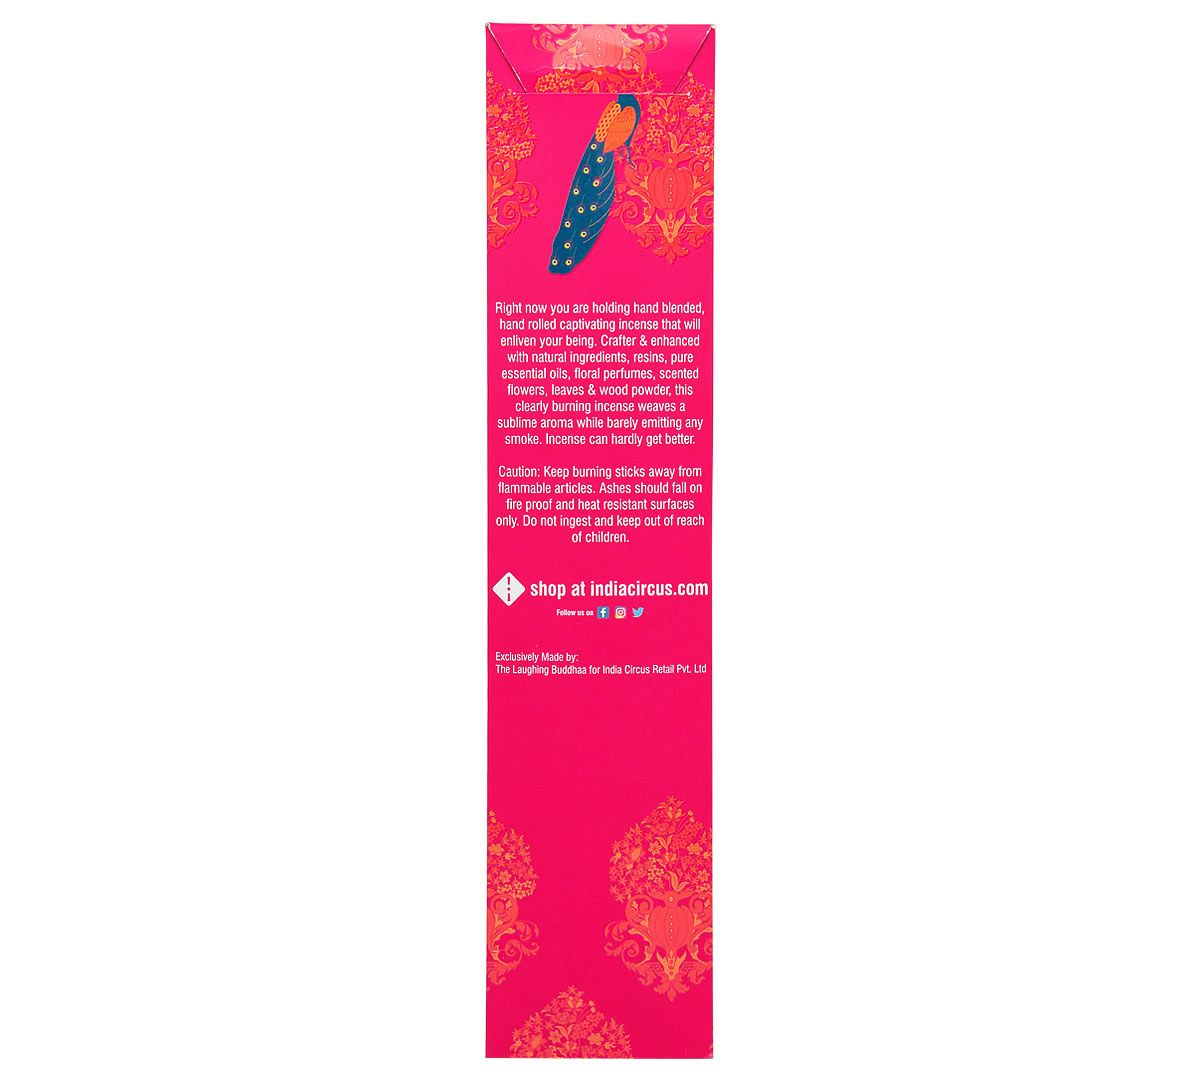 India Circus Cinnamon Spice Incense Stick